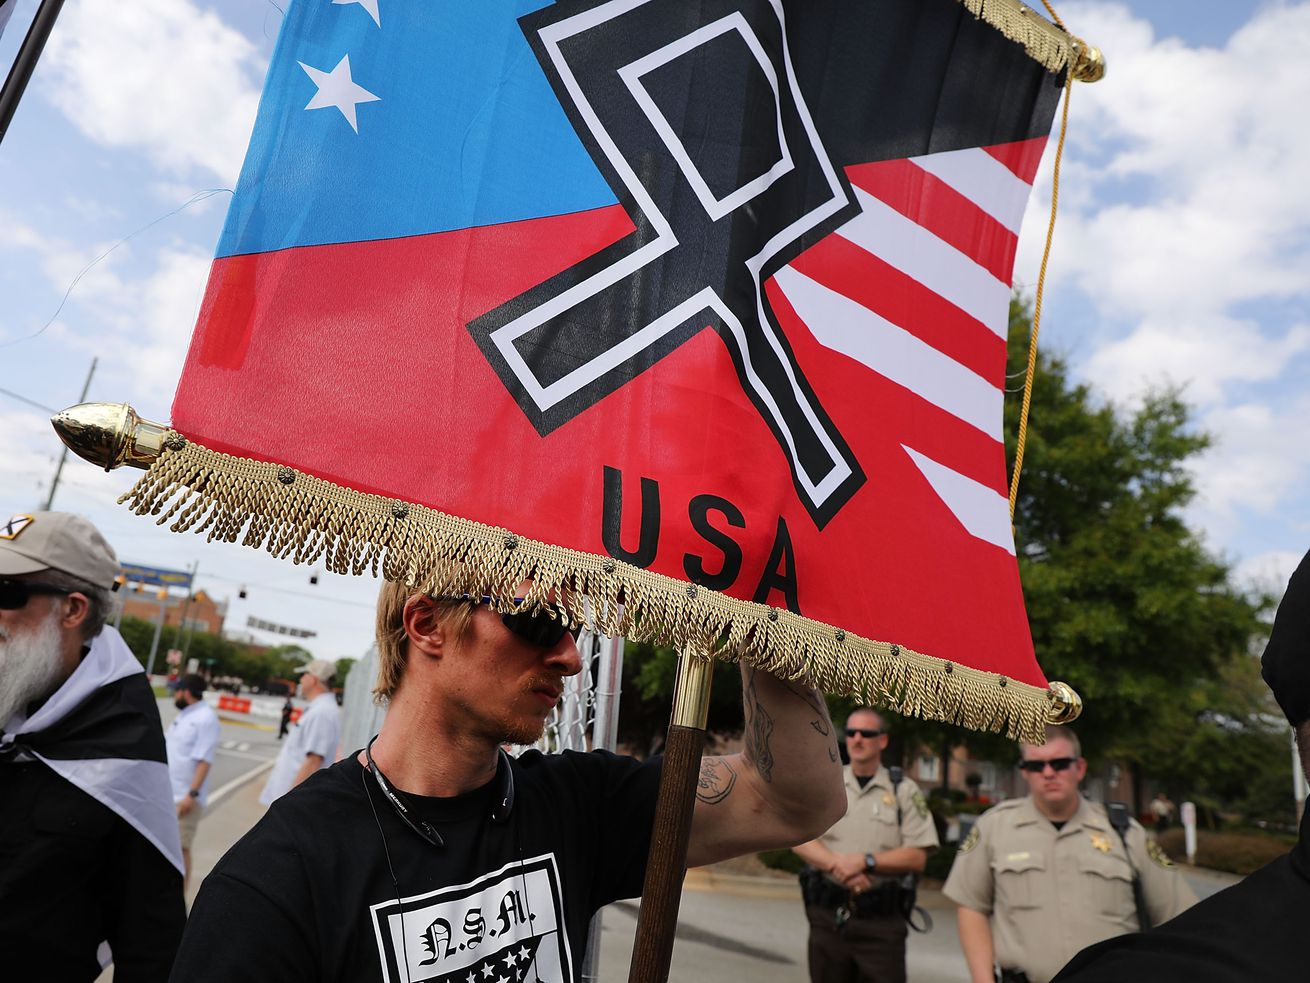 White nationalists and neo-Nazis have been on the rise in the United States